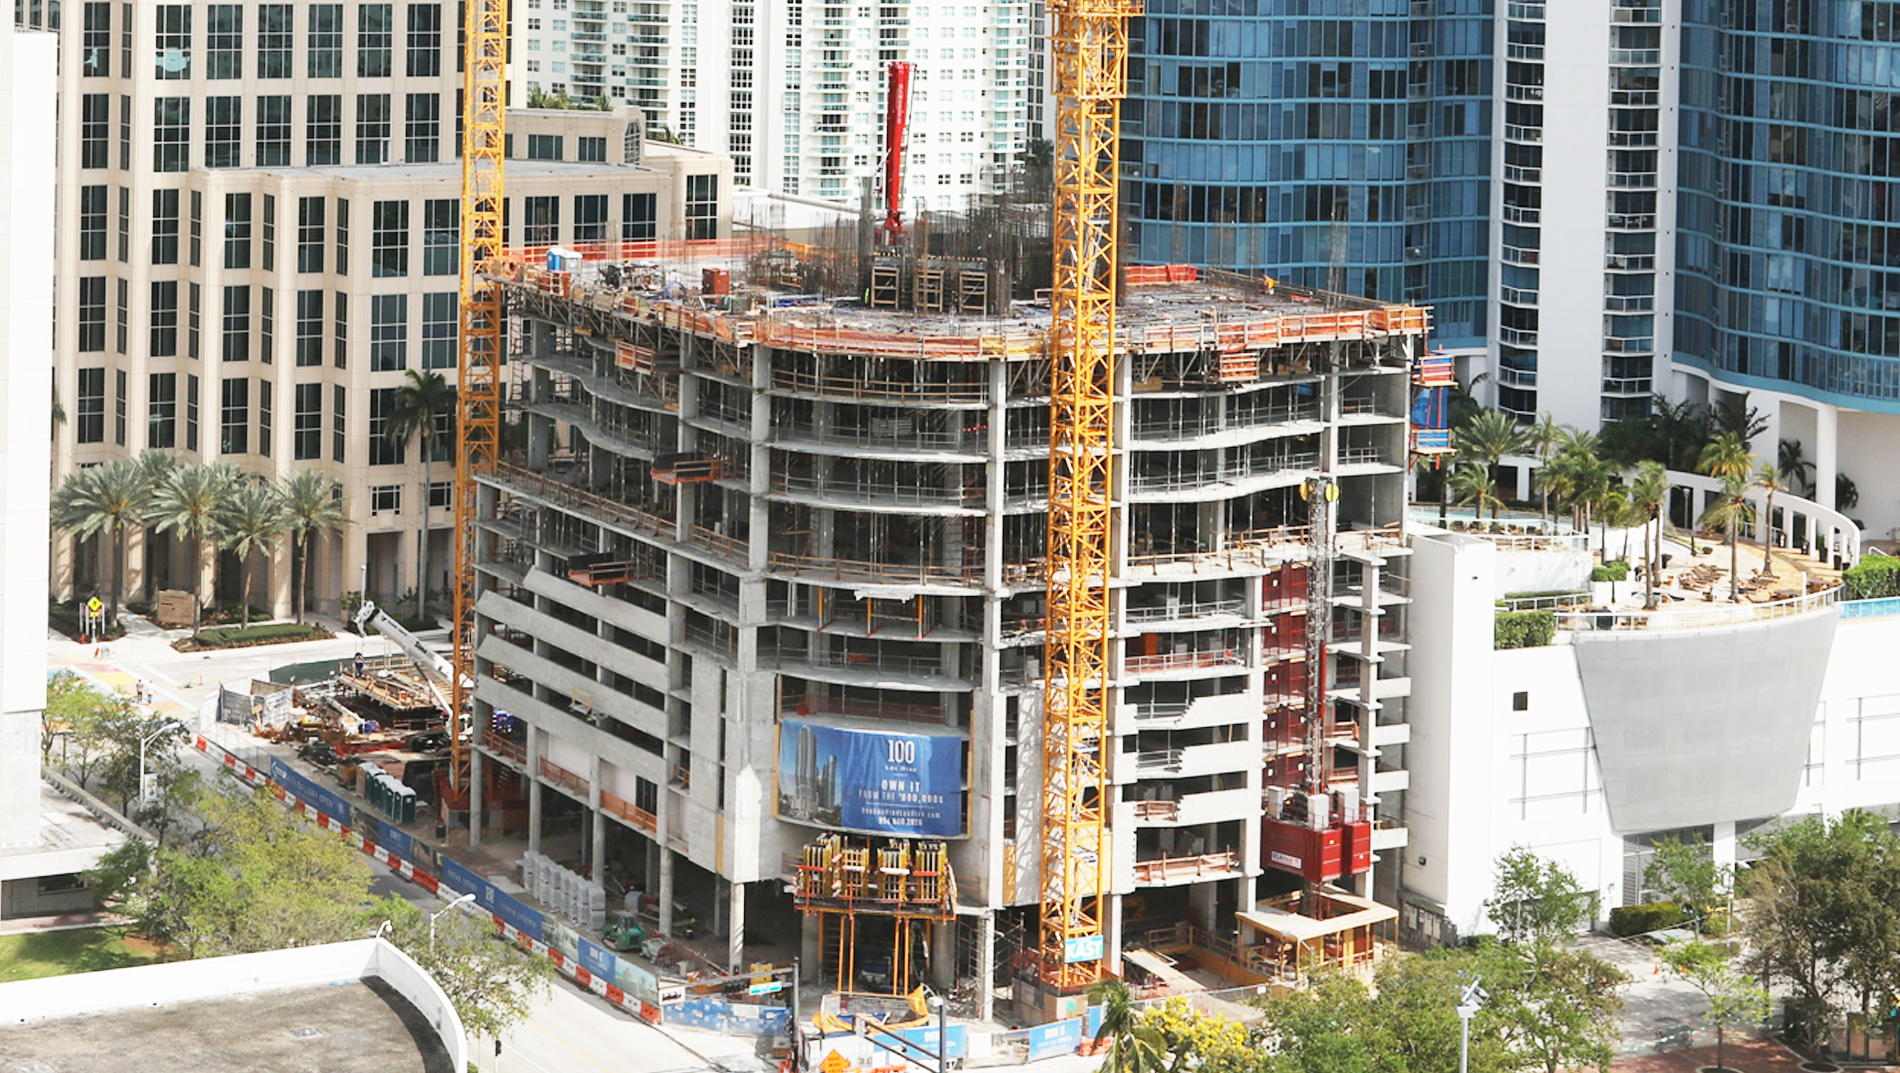 100 Las Olas Construction 3.12 2018